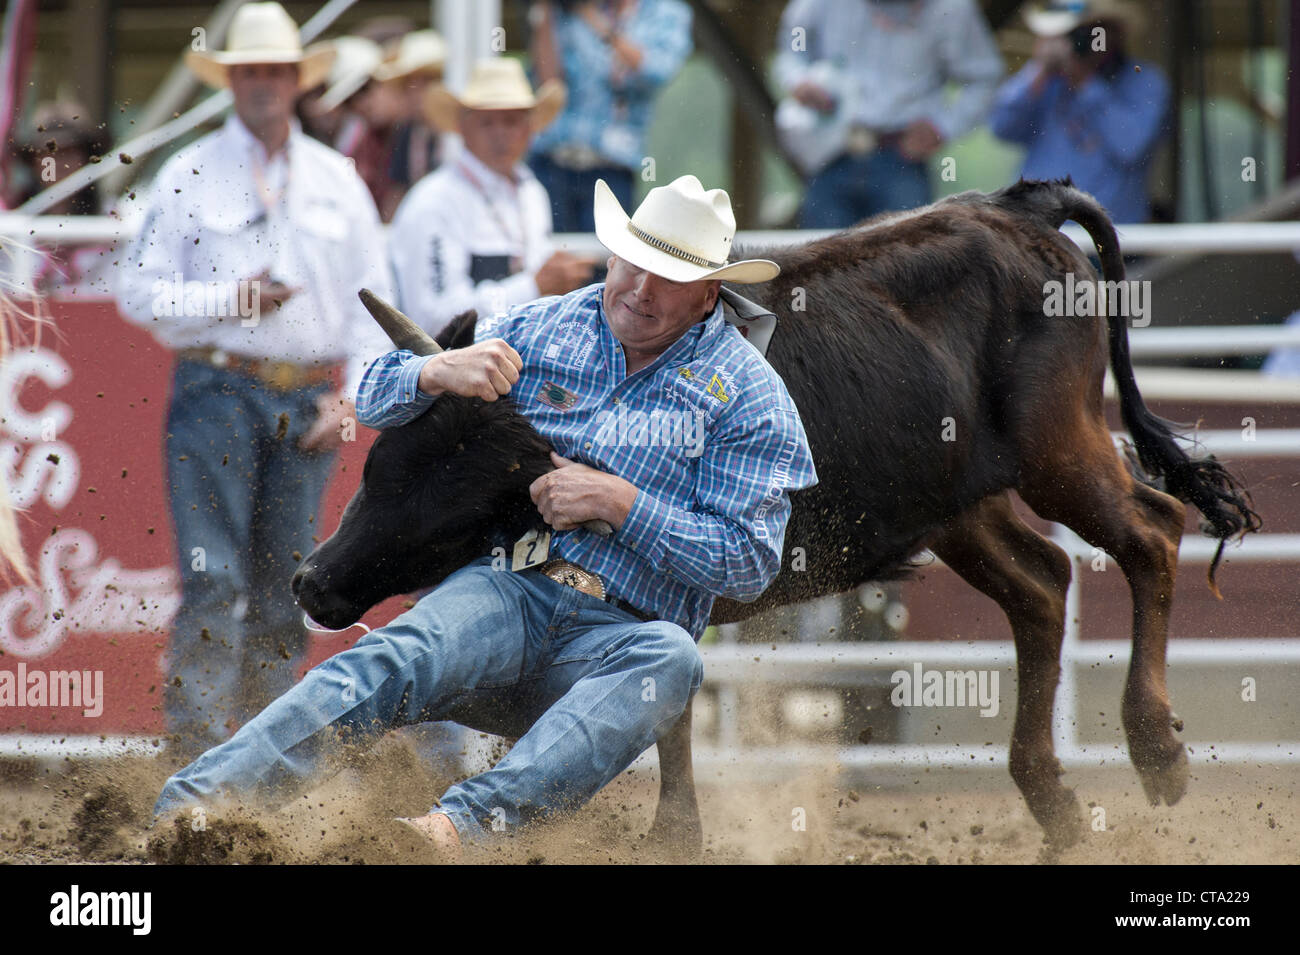 steer-wrestler-at-the-calgary-stampede-rodeo-CTA229.jpg